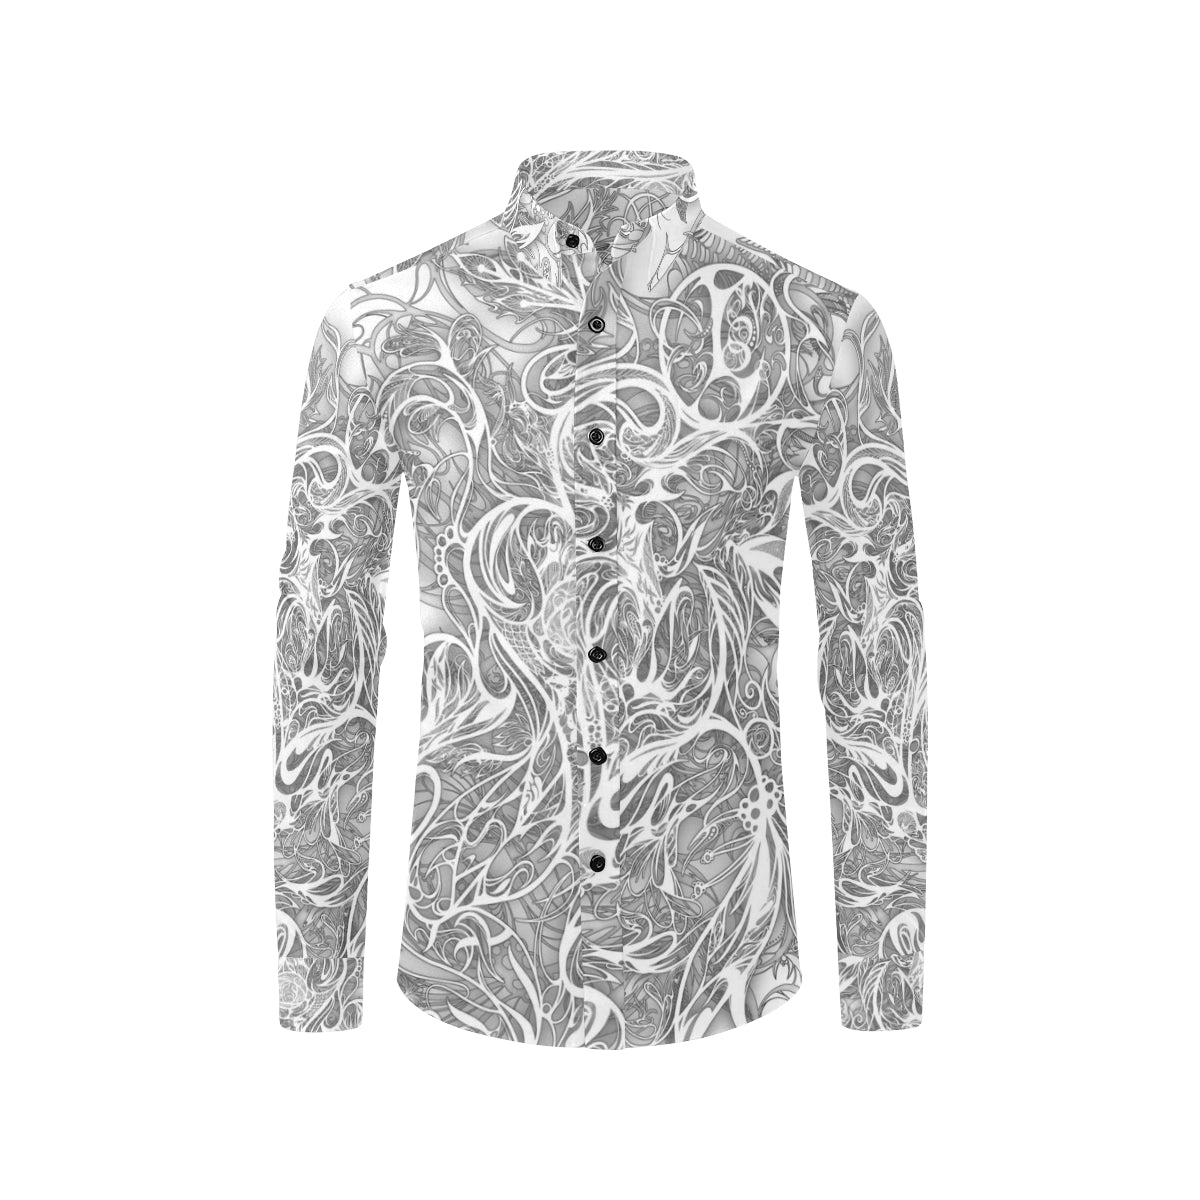 Zen Doodle 8 Snow White Ornate Men's All Over Print Casual Dress Shirt